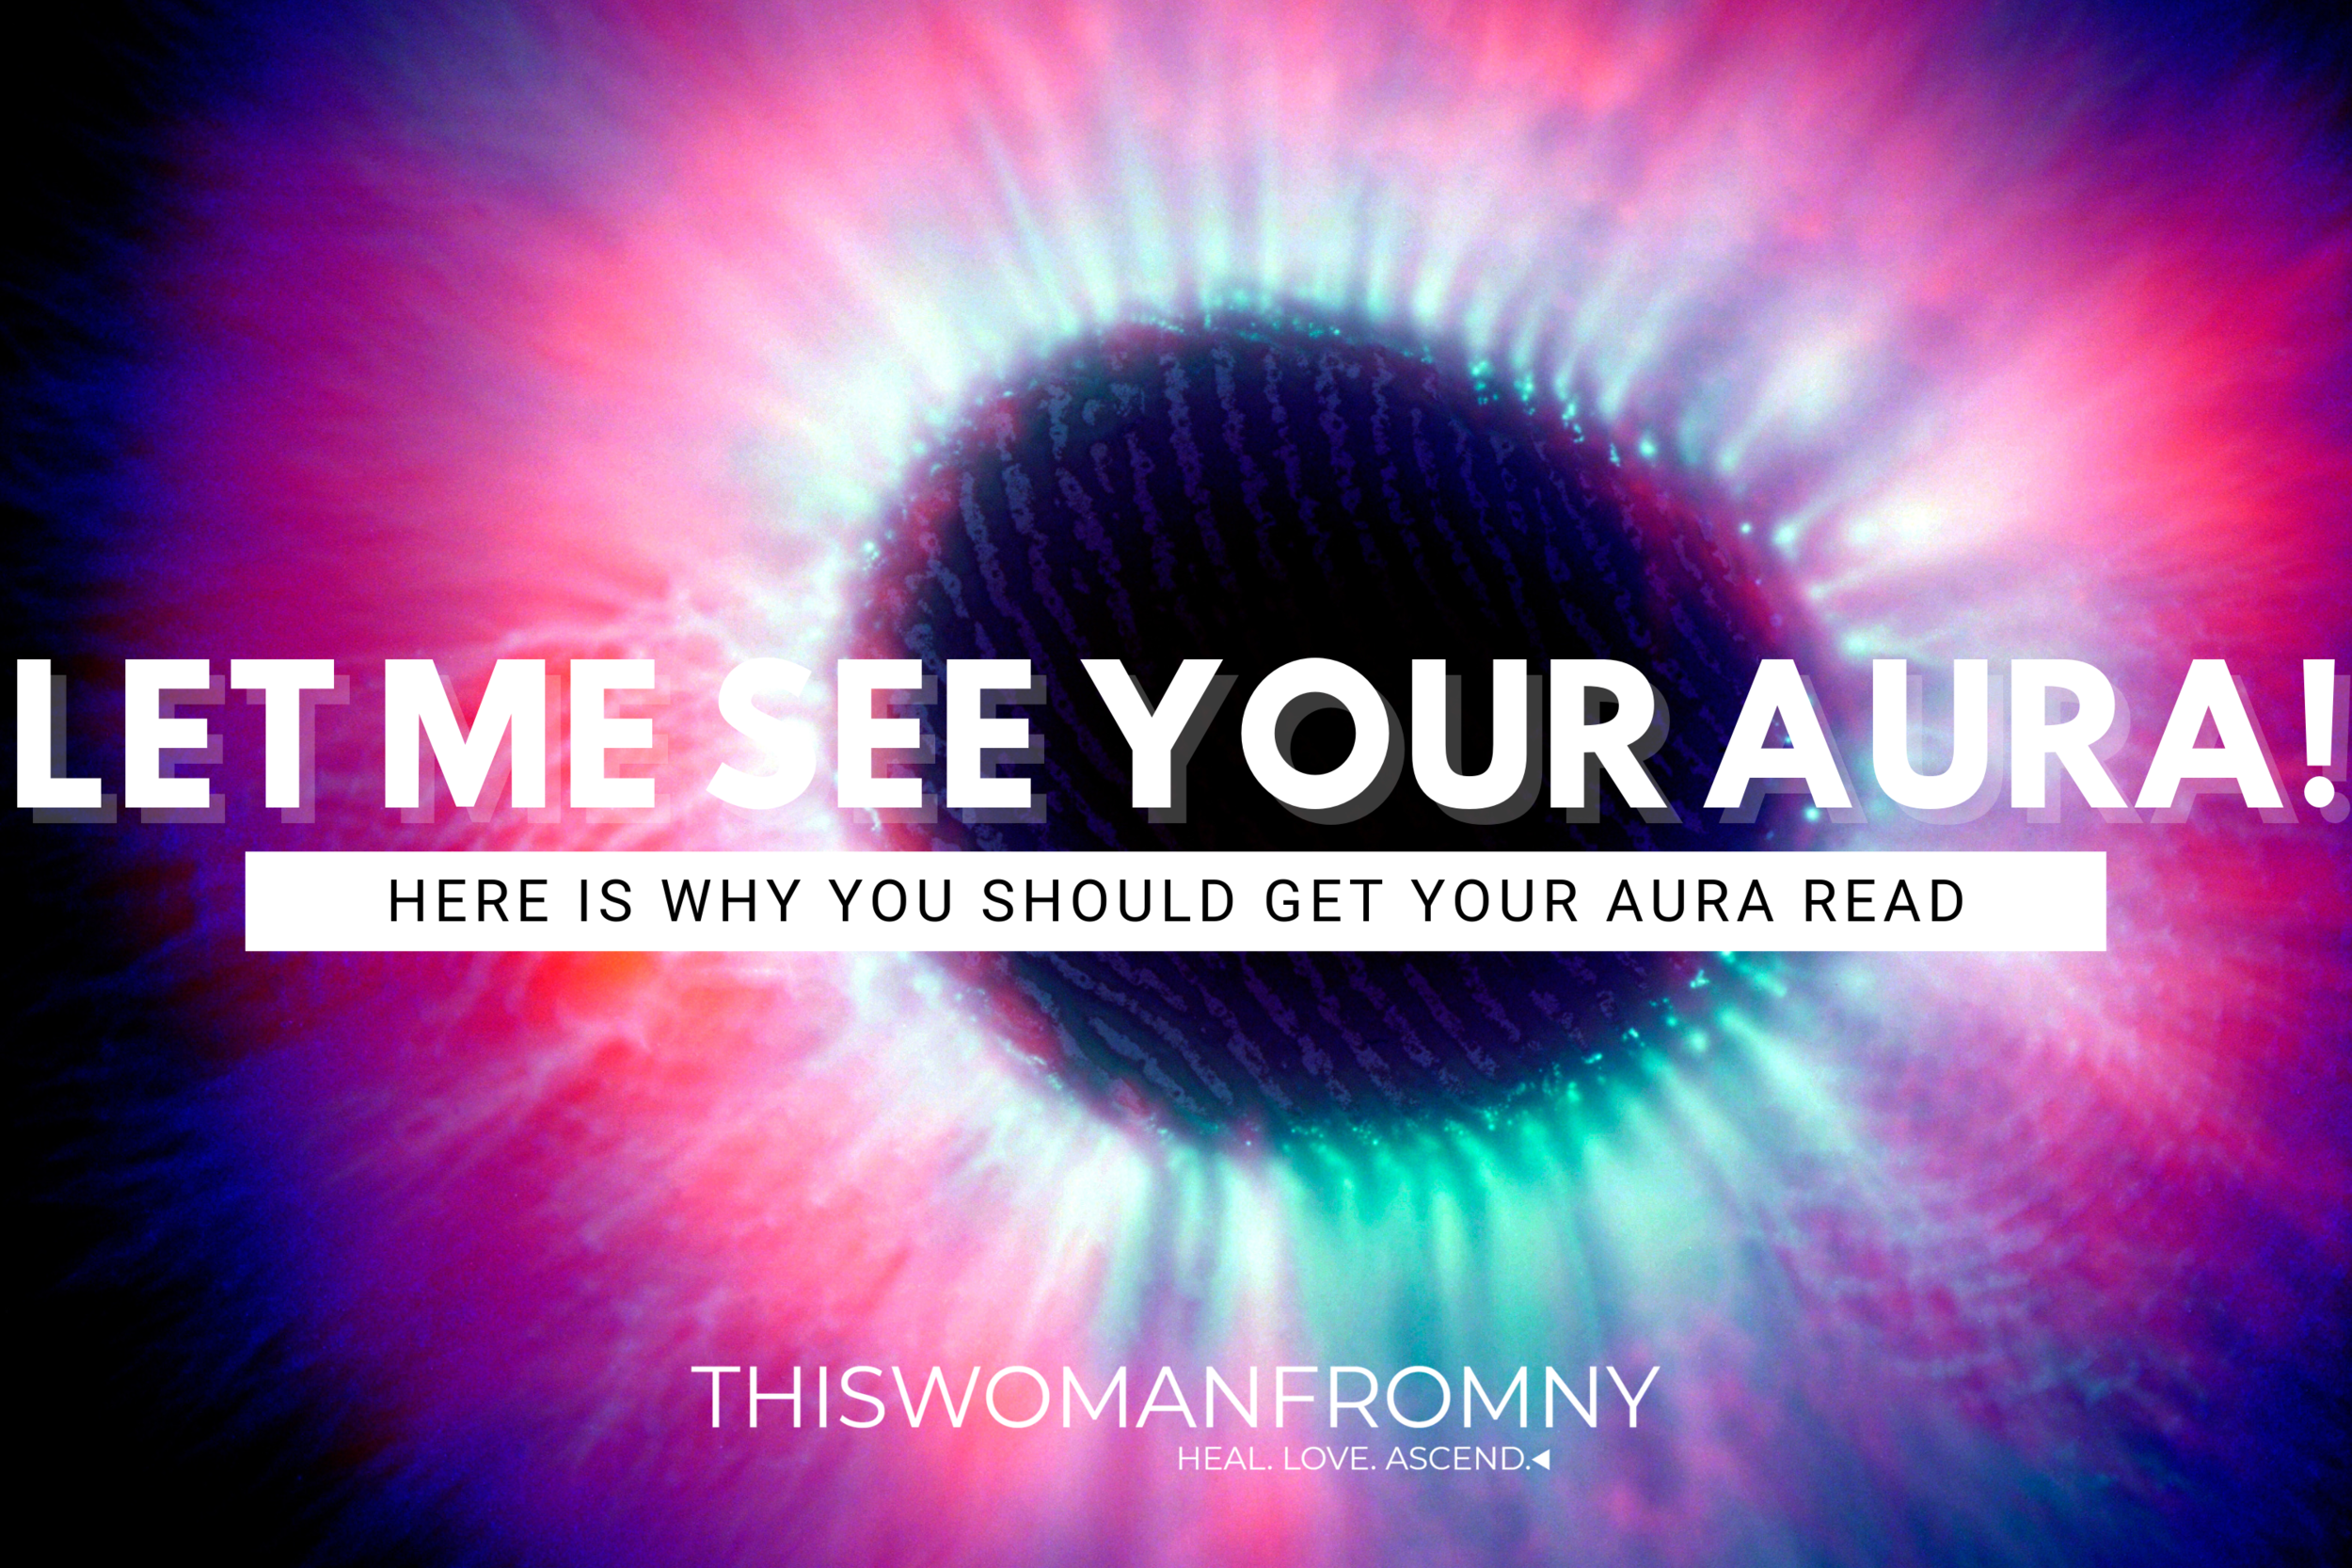 Let Me See Your Aura! | THISWOMANFROMNY